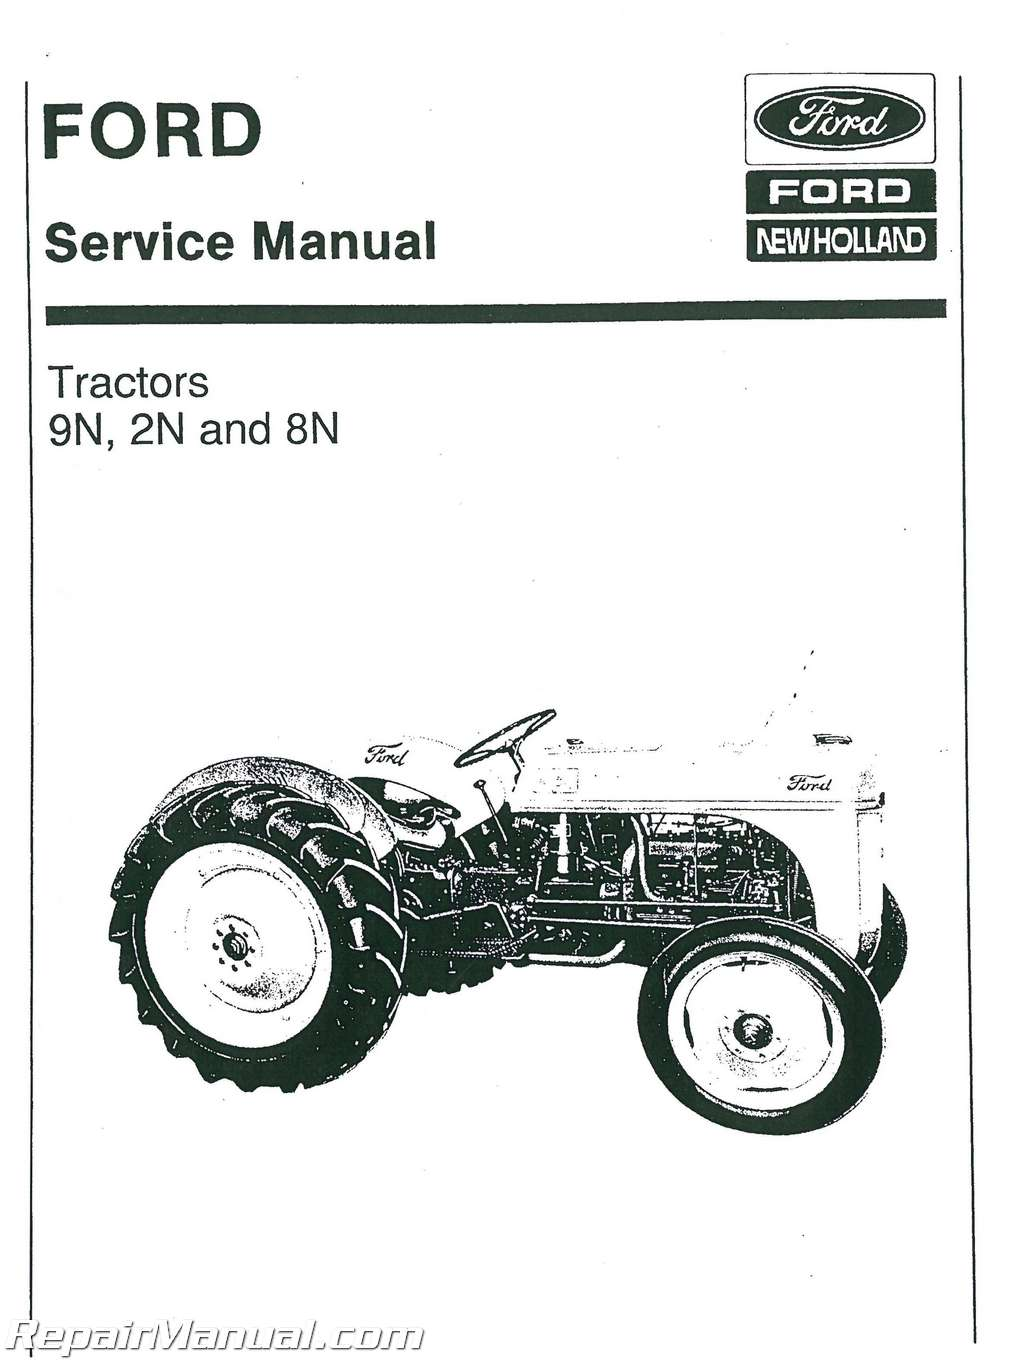 Ford 8n Tractor Owners Manual Steering 2n And 9n Service Rh Repairmanual Com Download